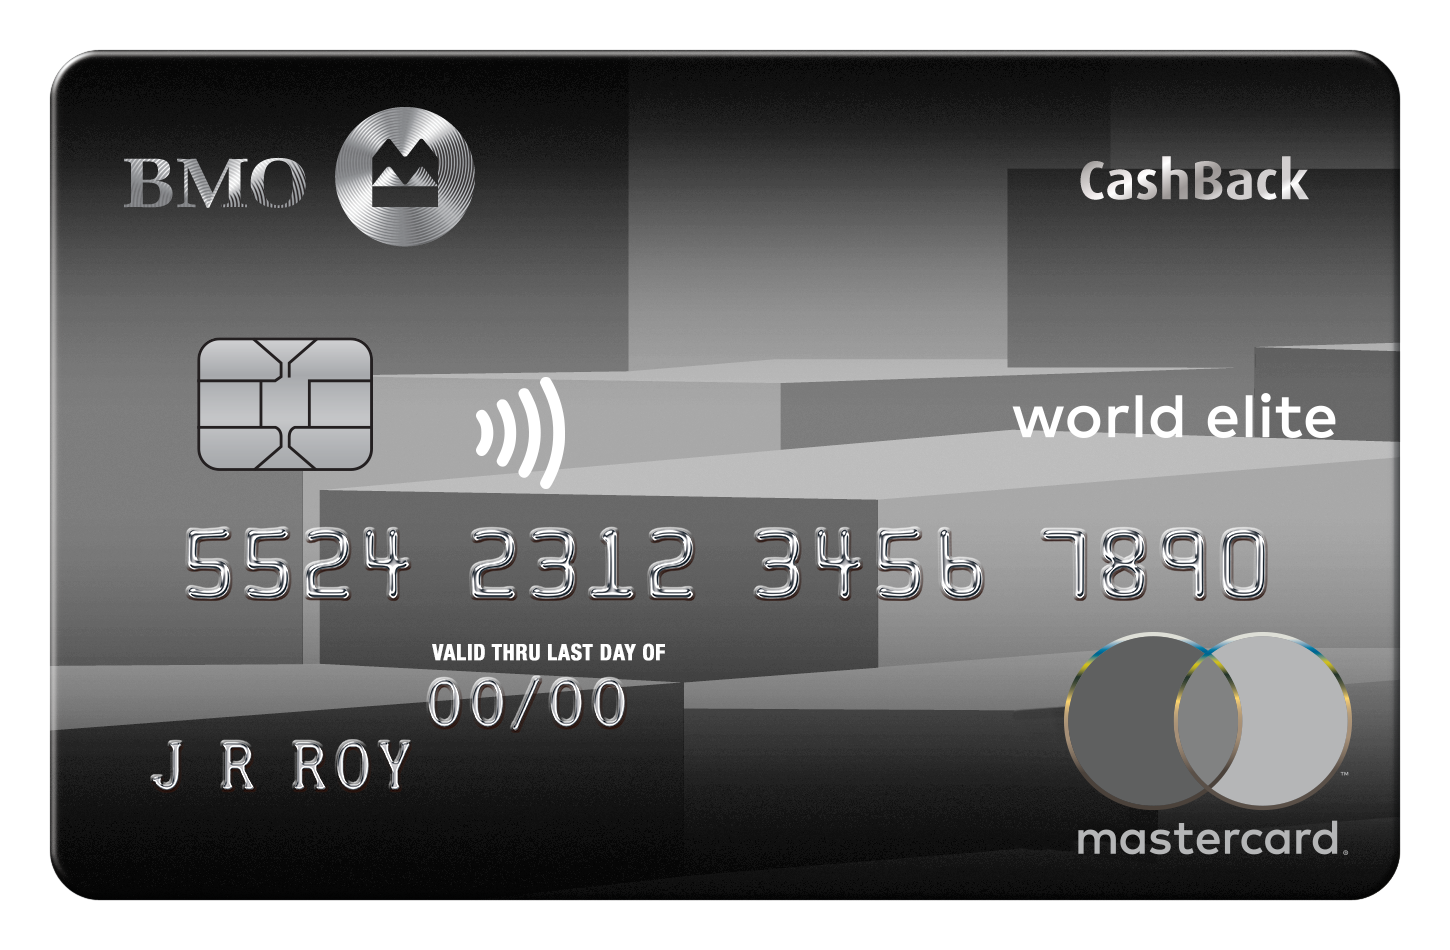 BMO CashBack World Elite Mastercard